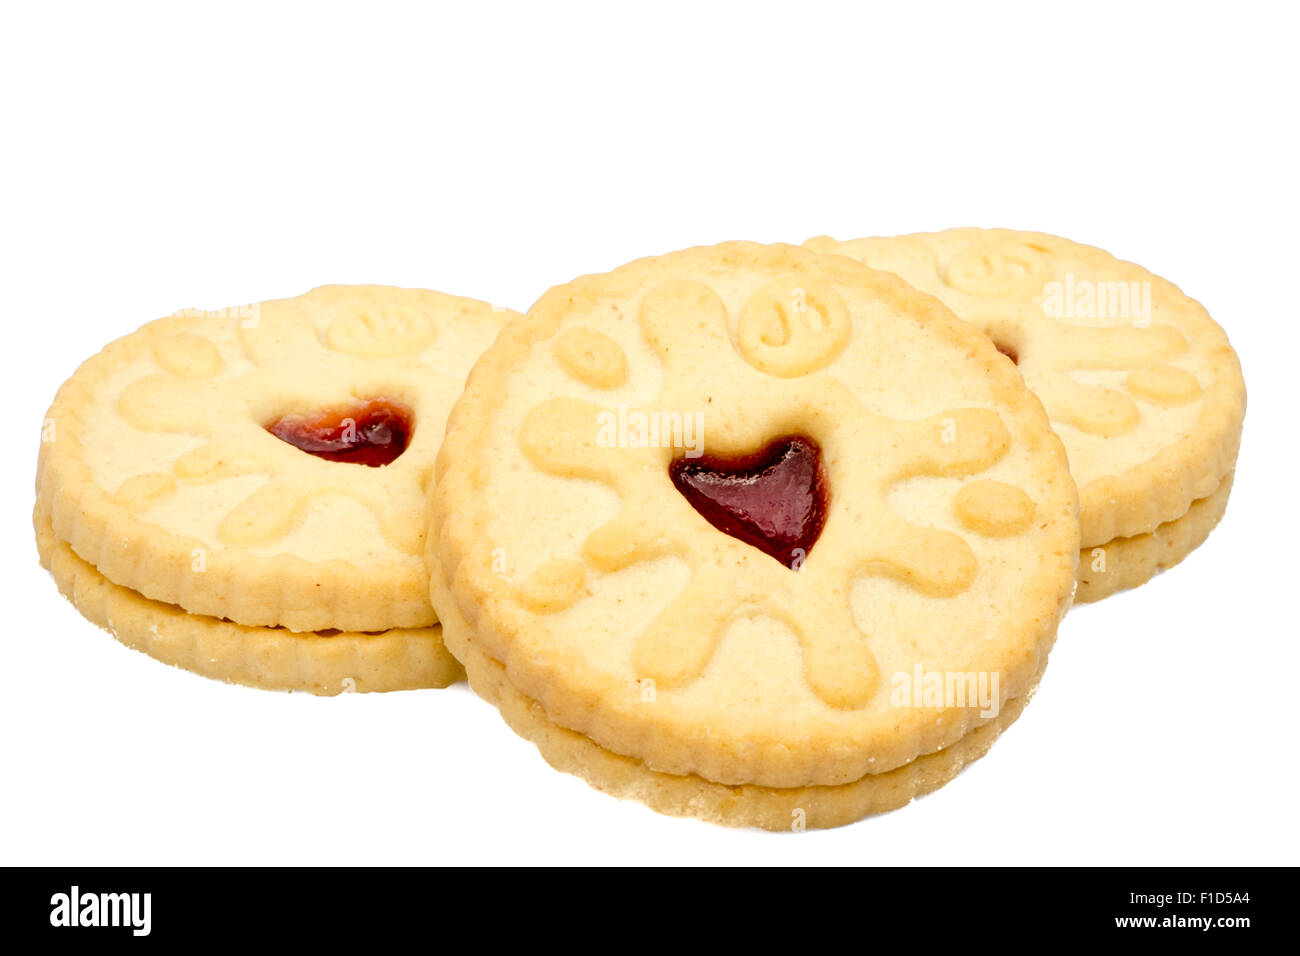 biscuits cut out or isolated on a white background, UK. - Stock Image